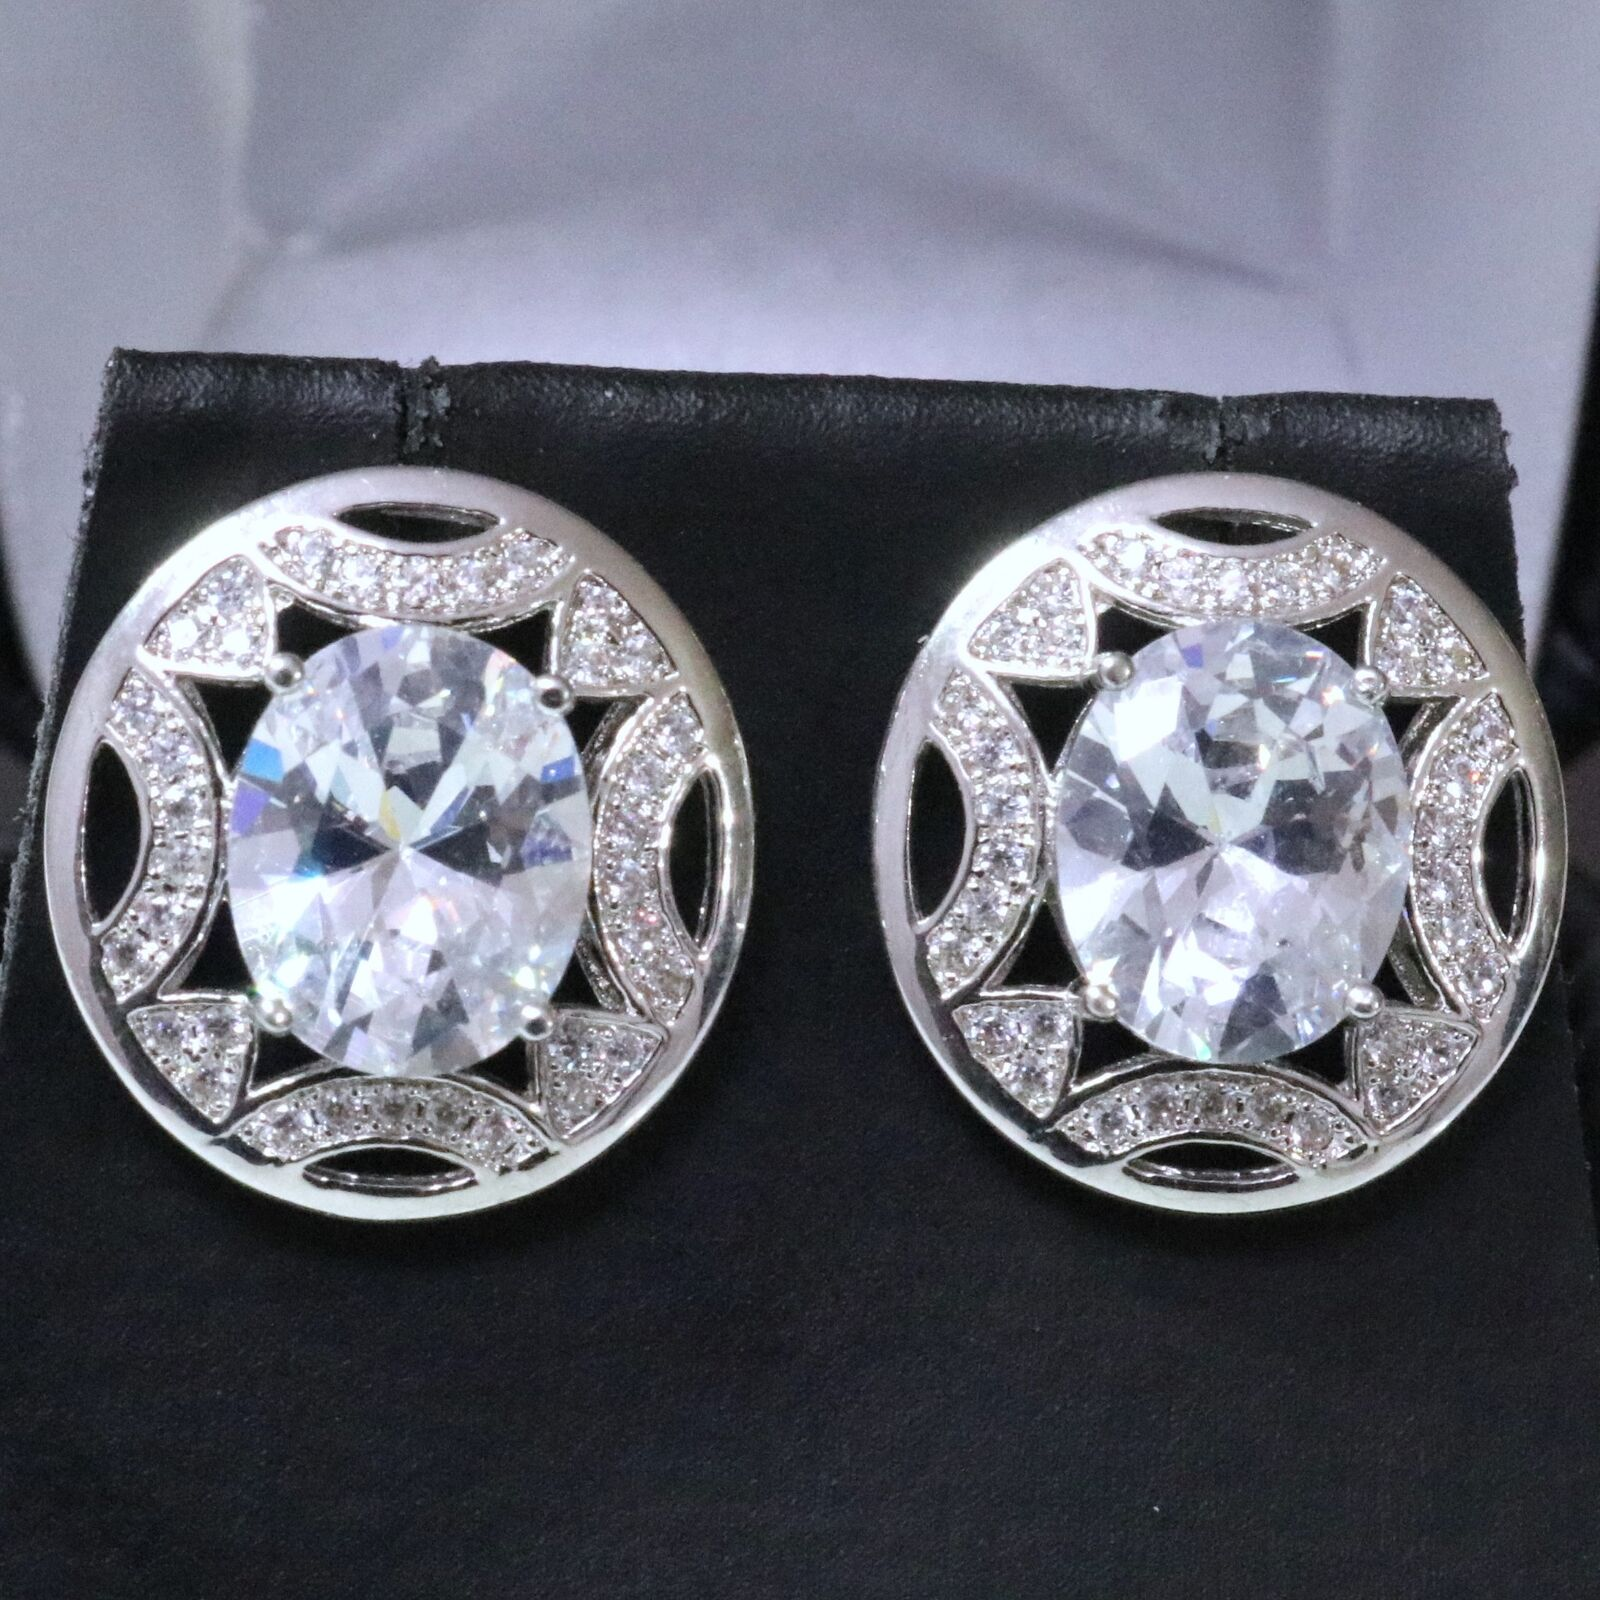 2 Ct Oval Cubic Zirconia Earring Stud Women Jewelry 14K White gold Plated